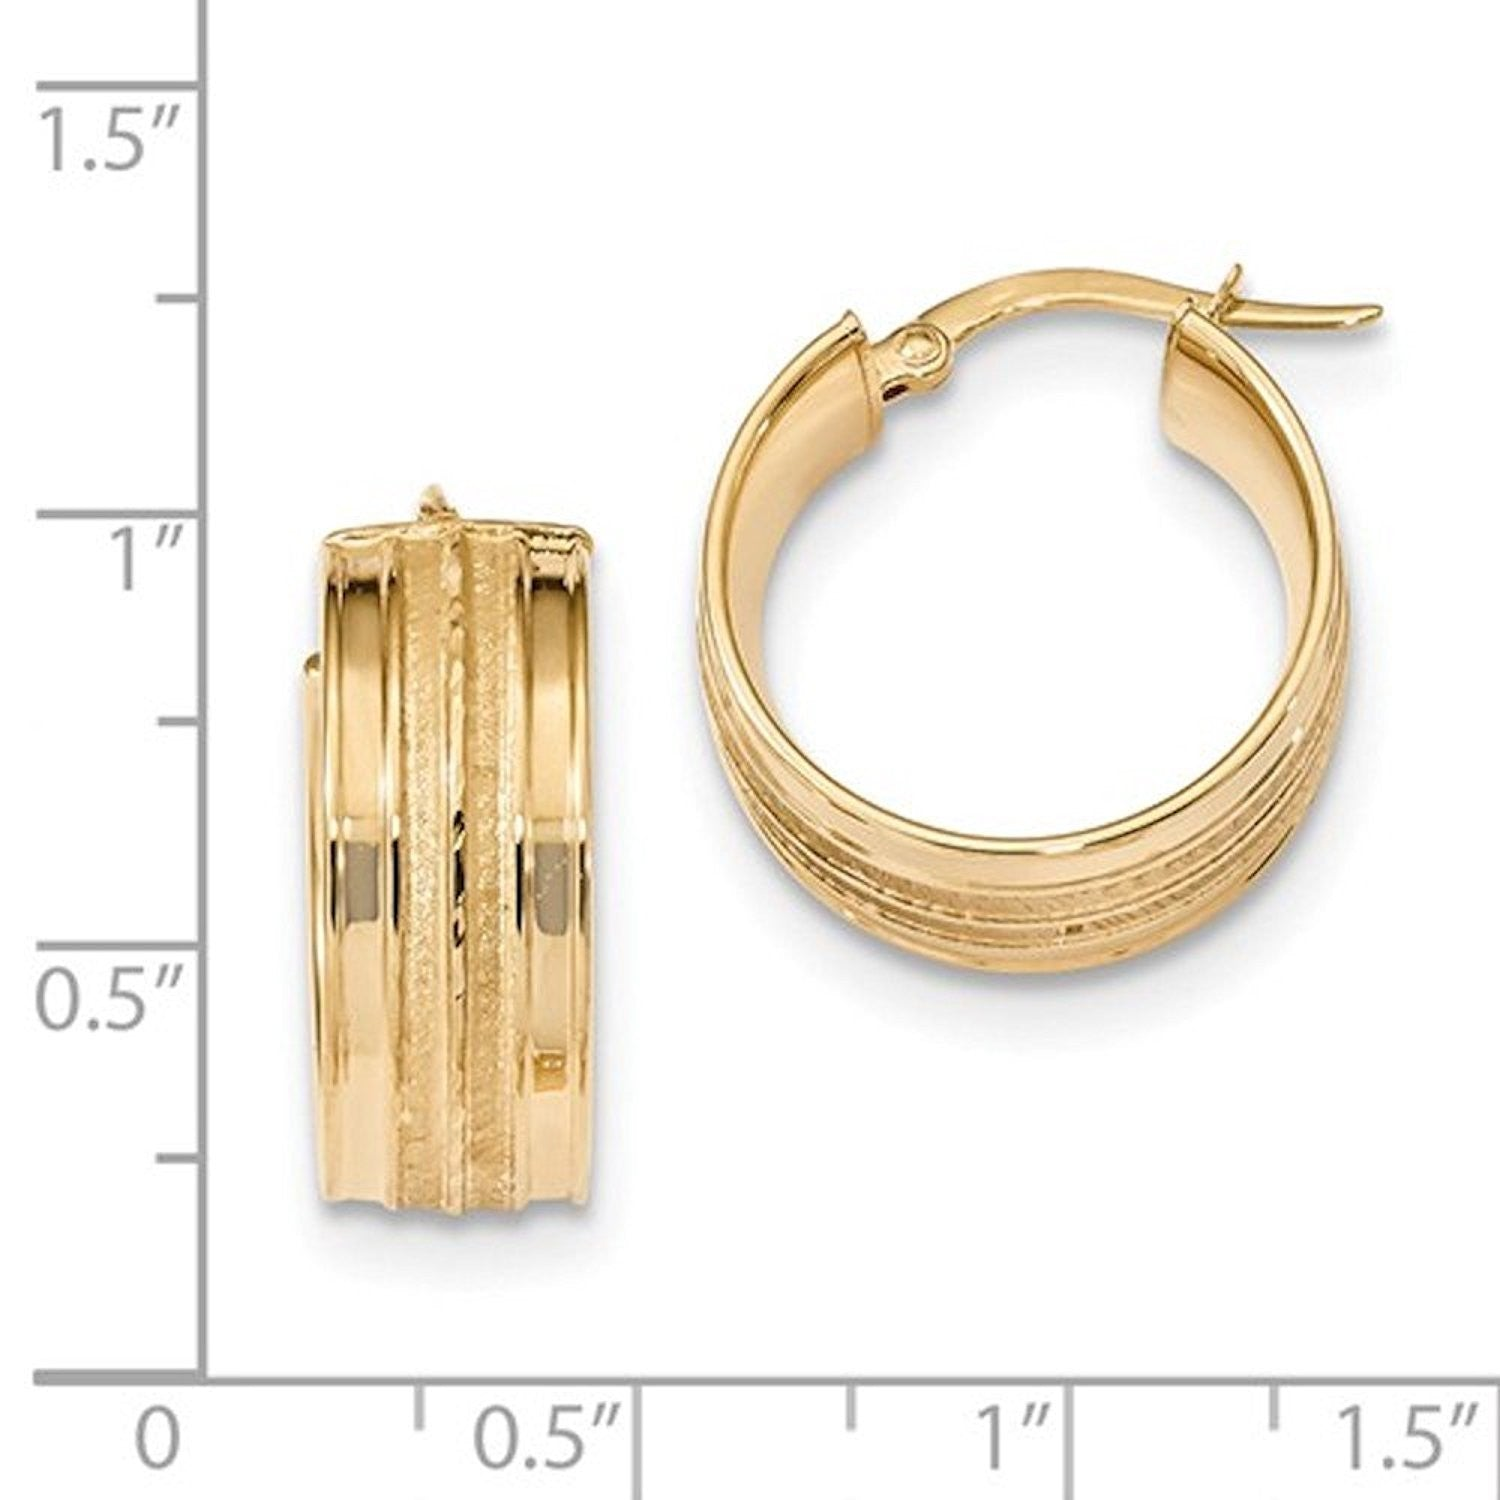 14K Yellow Gold 18mmx7.8mm Modern Contemporary Round Hoop Earrings